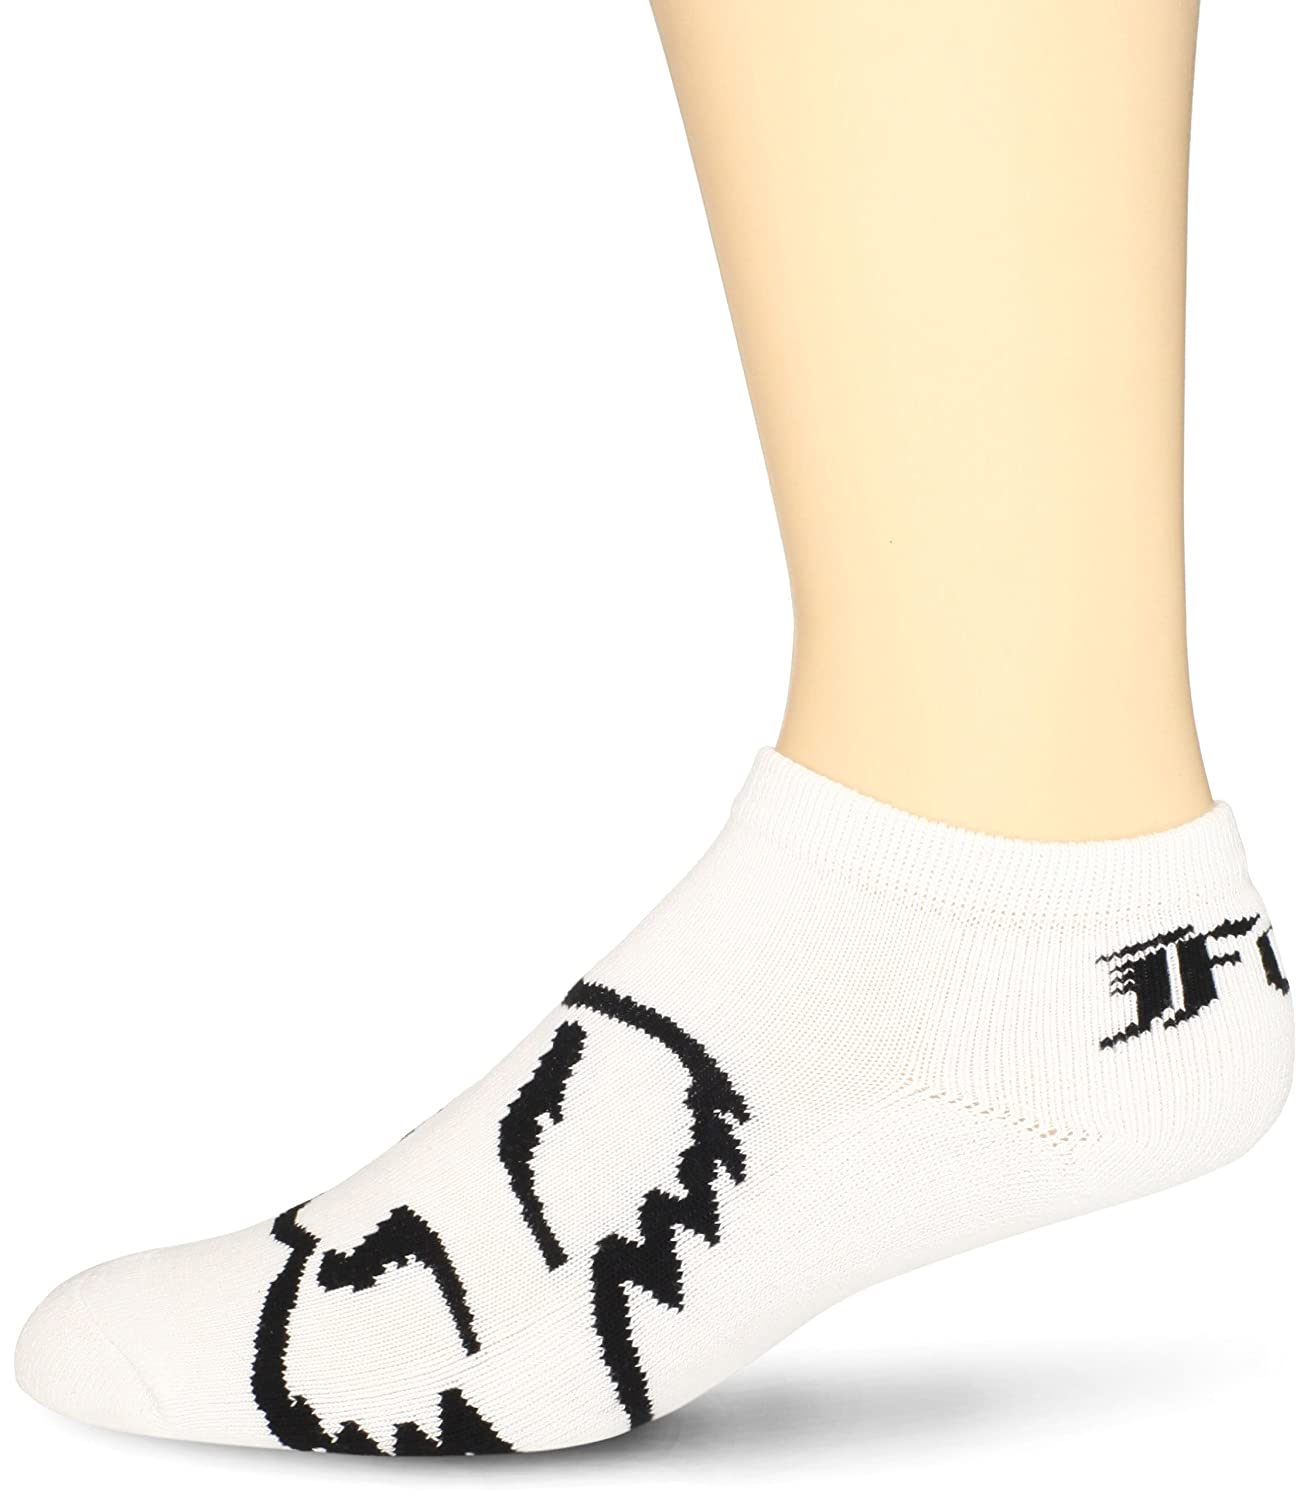 Hot Fox Men's Core No Show Socks hot sale